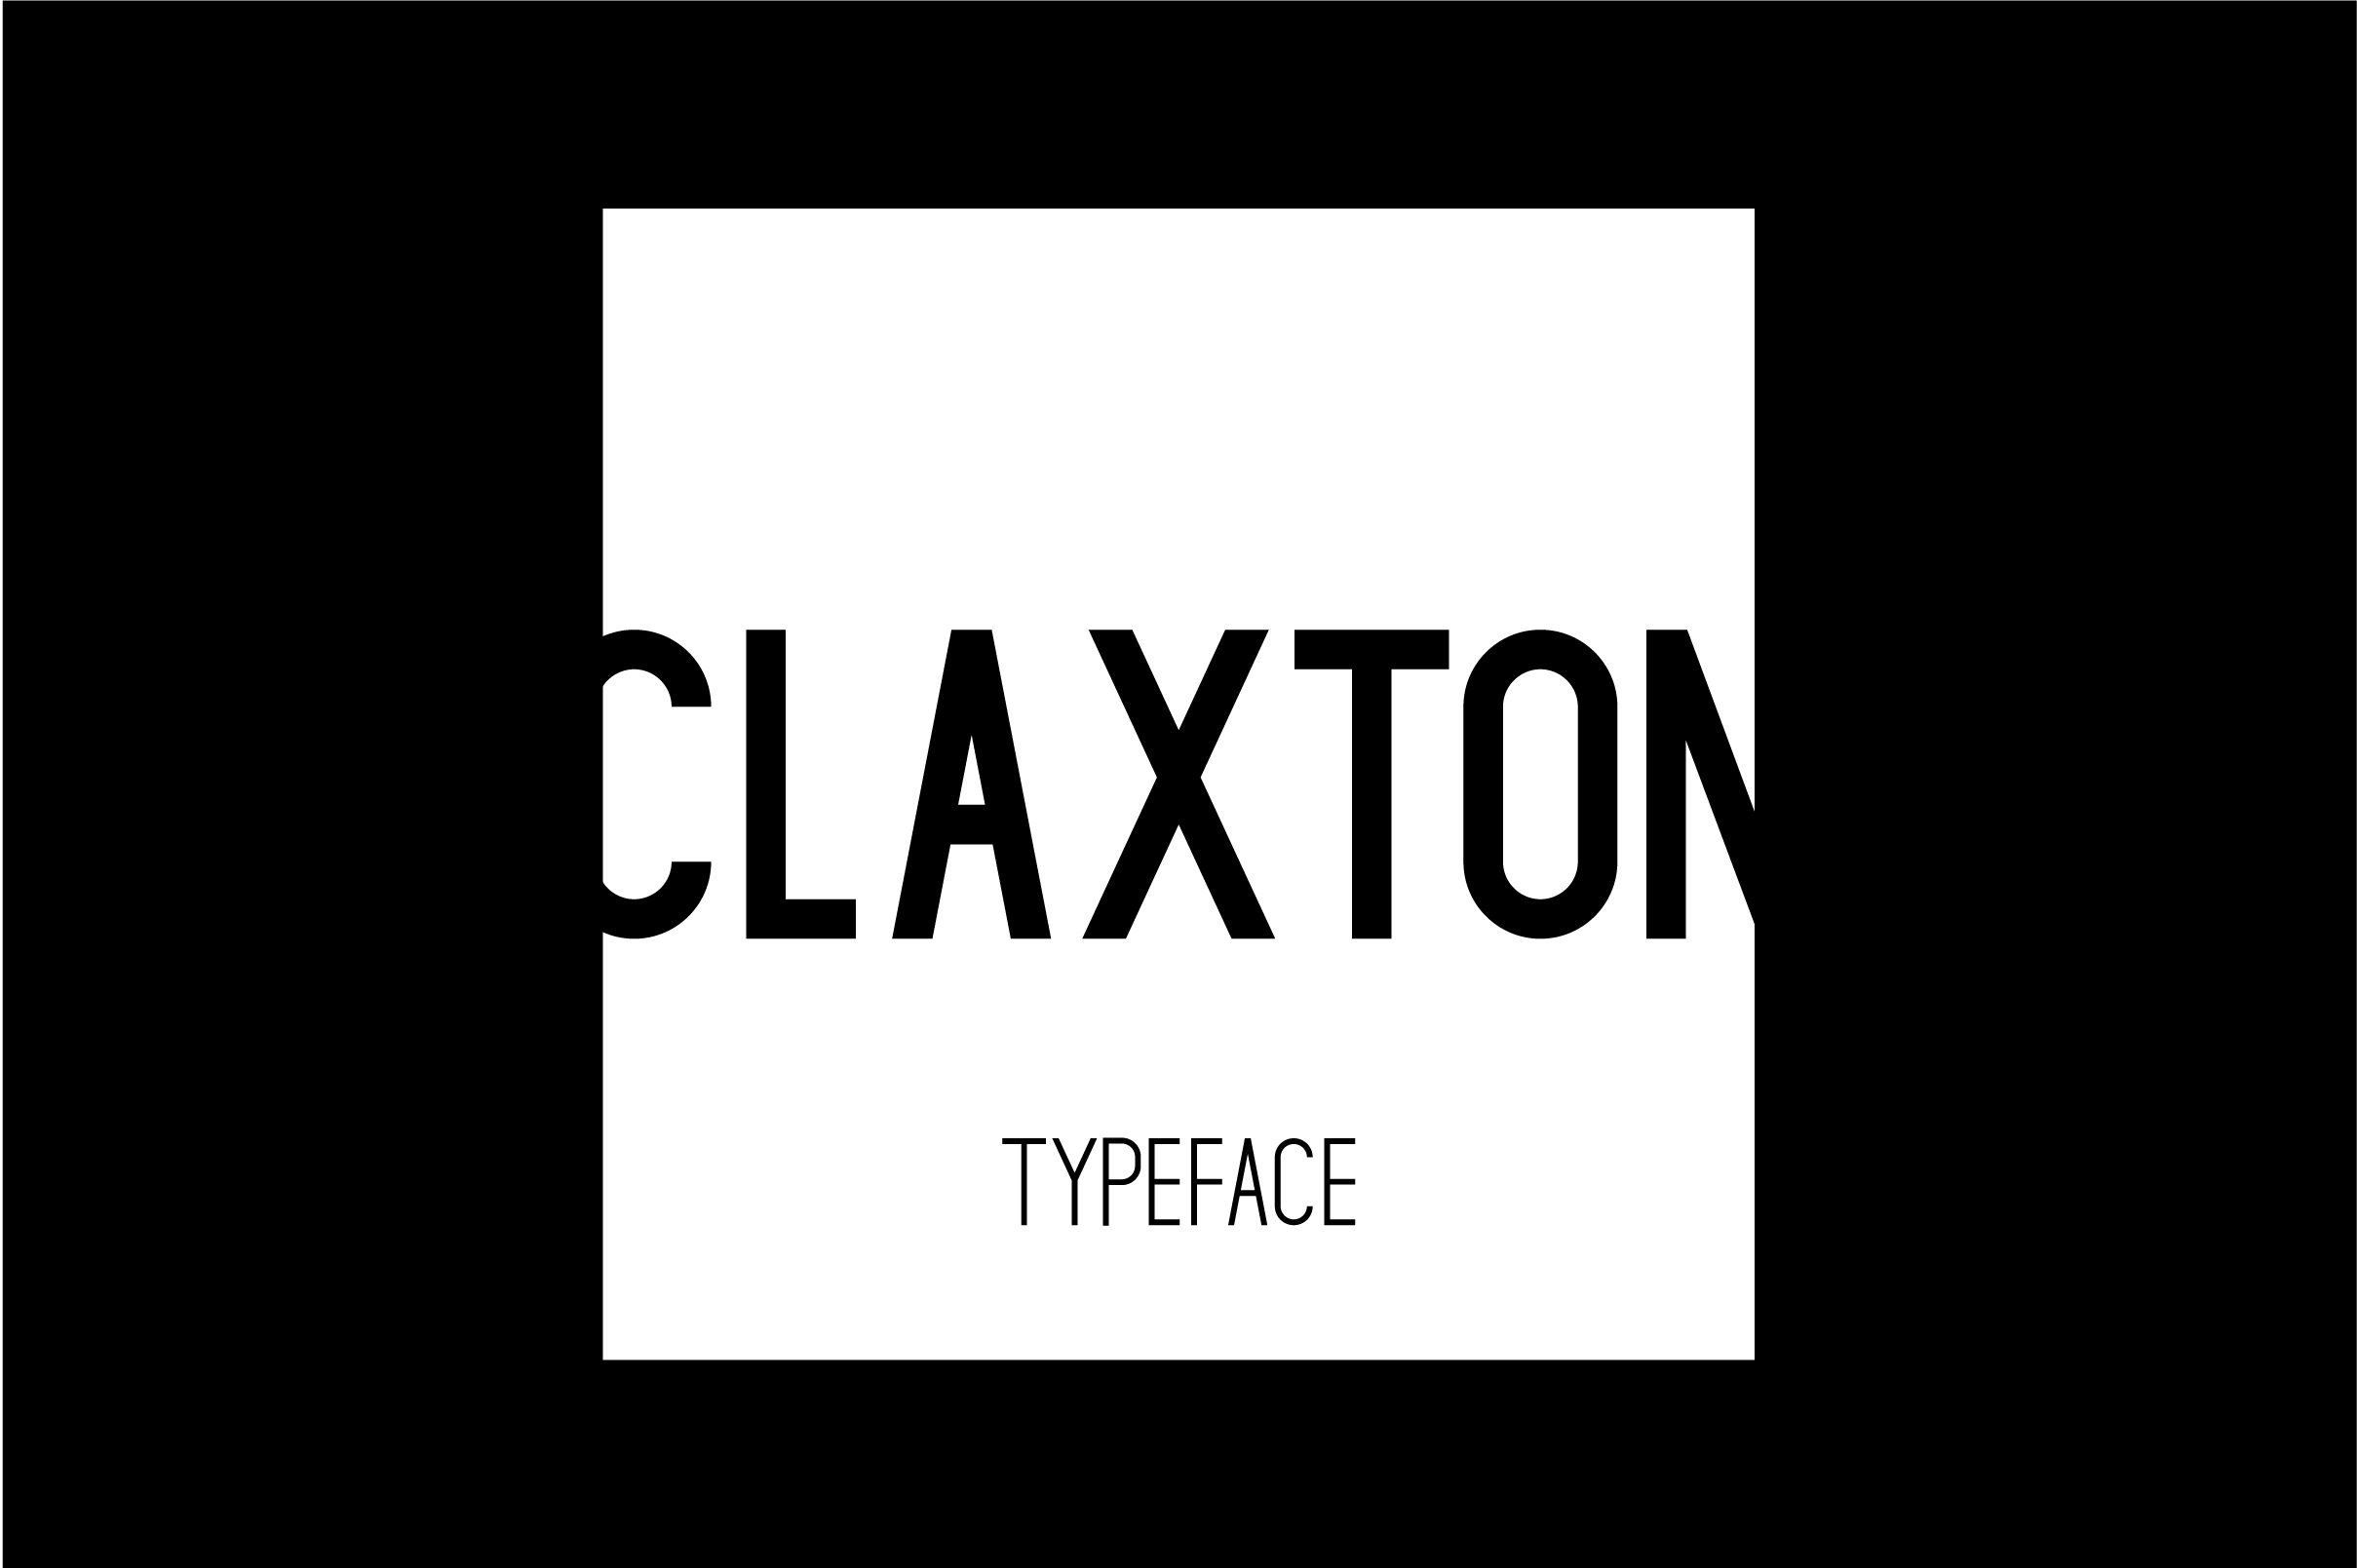 Claxton Typeface example image 2